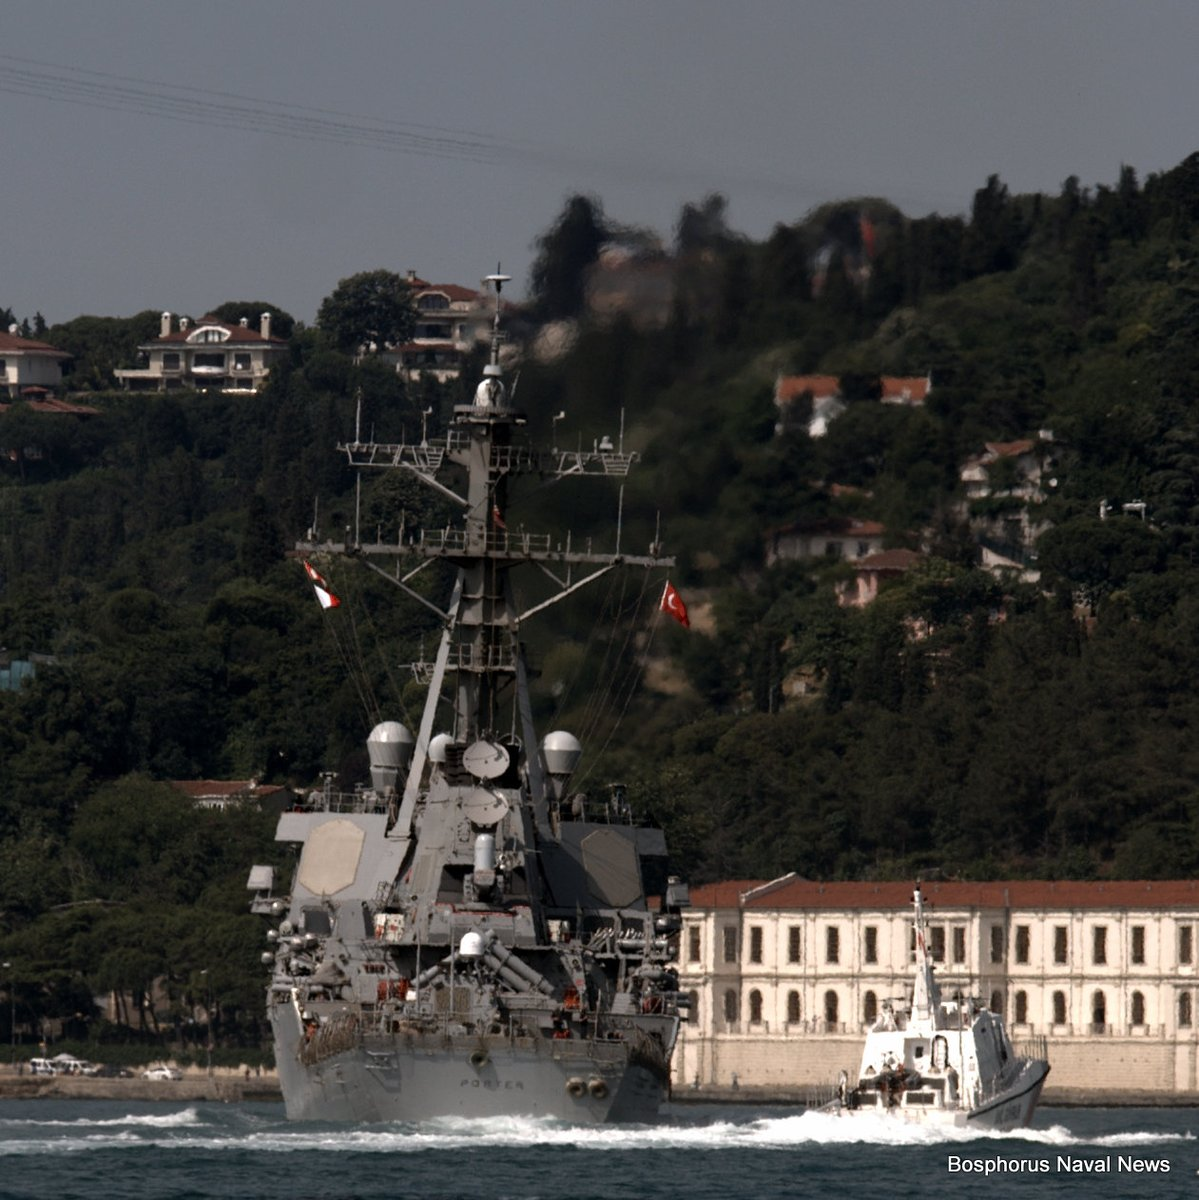 USS Porter (DDG-78) crossing the Bosporus Strait on June 6, 2016. Bosporus Naval News Photo used with permission